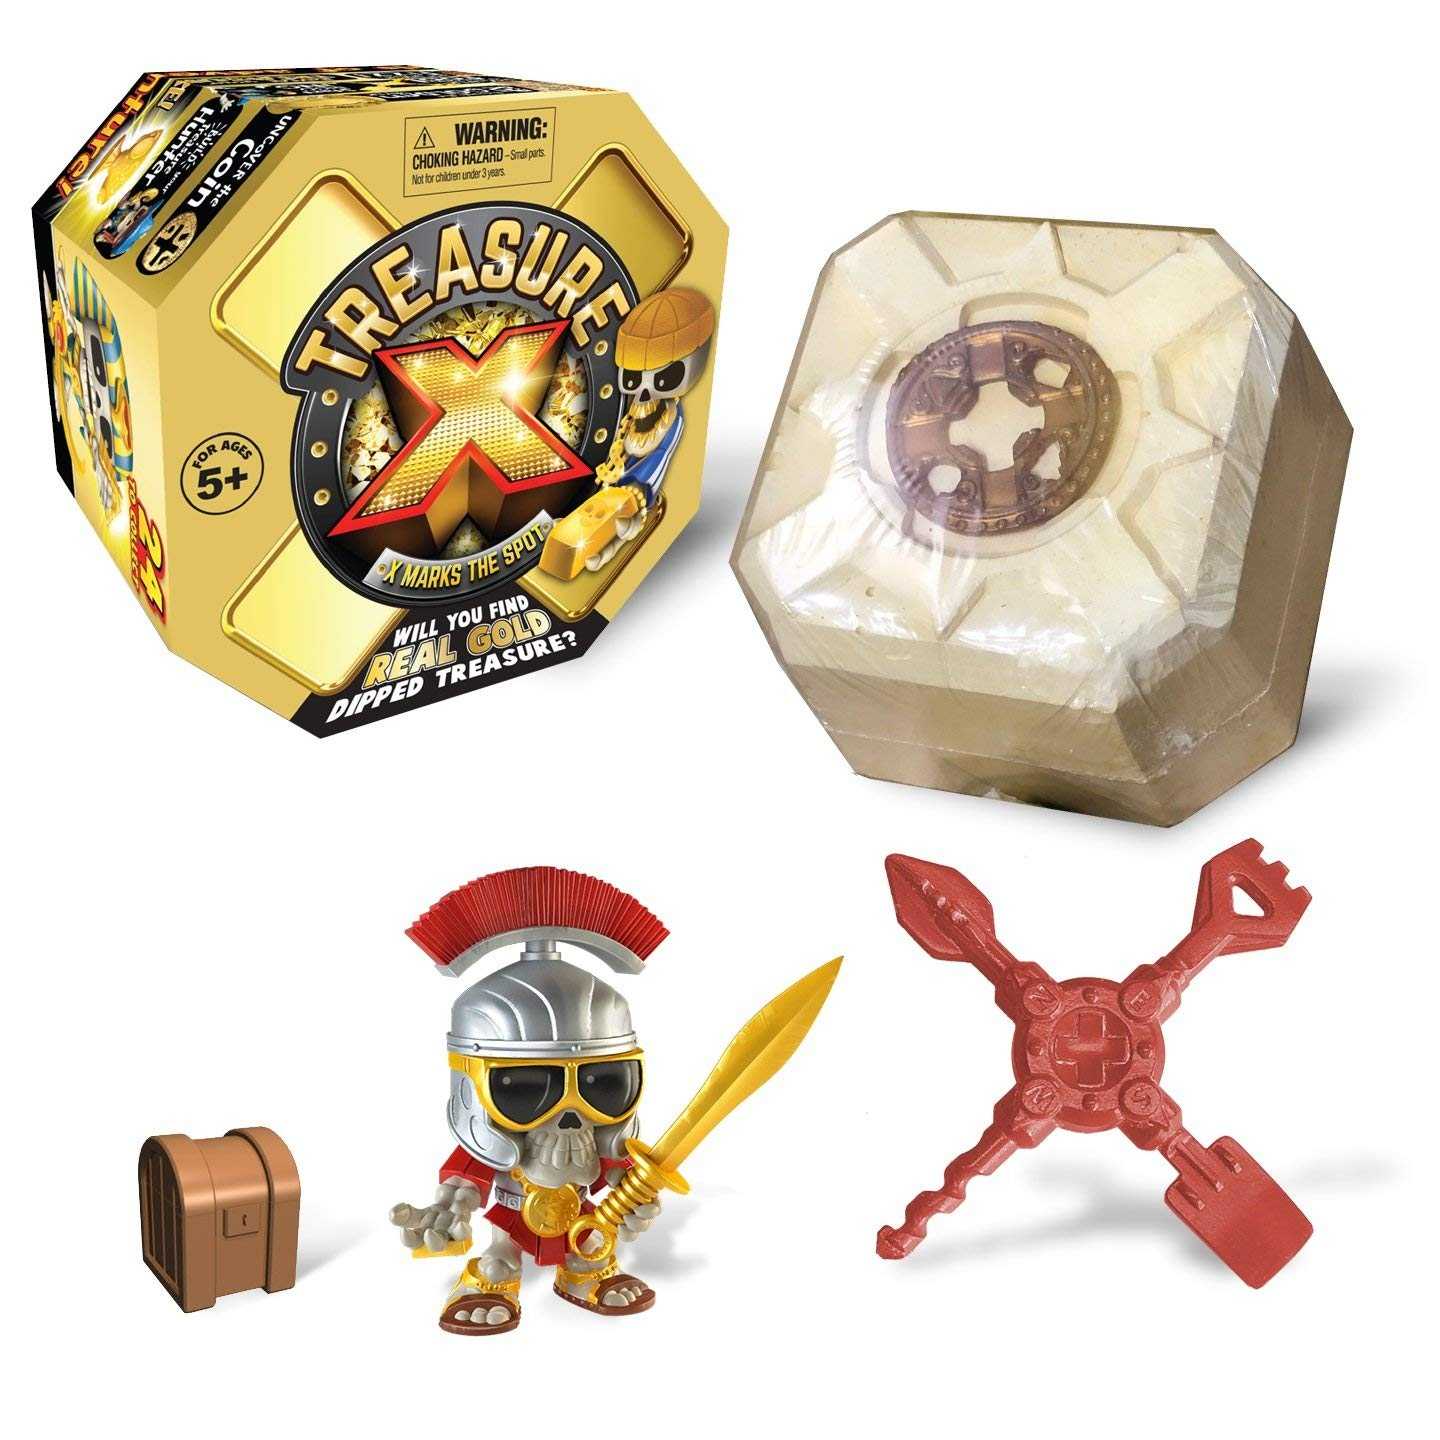 Kids Treasure X Adventure Pack